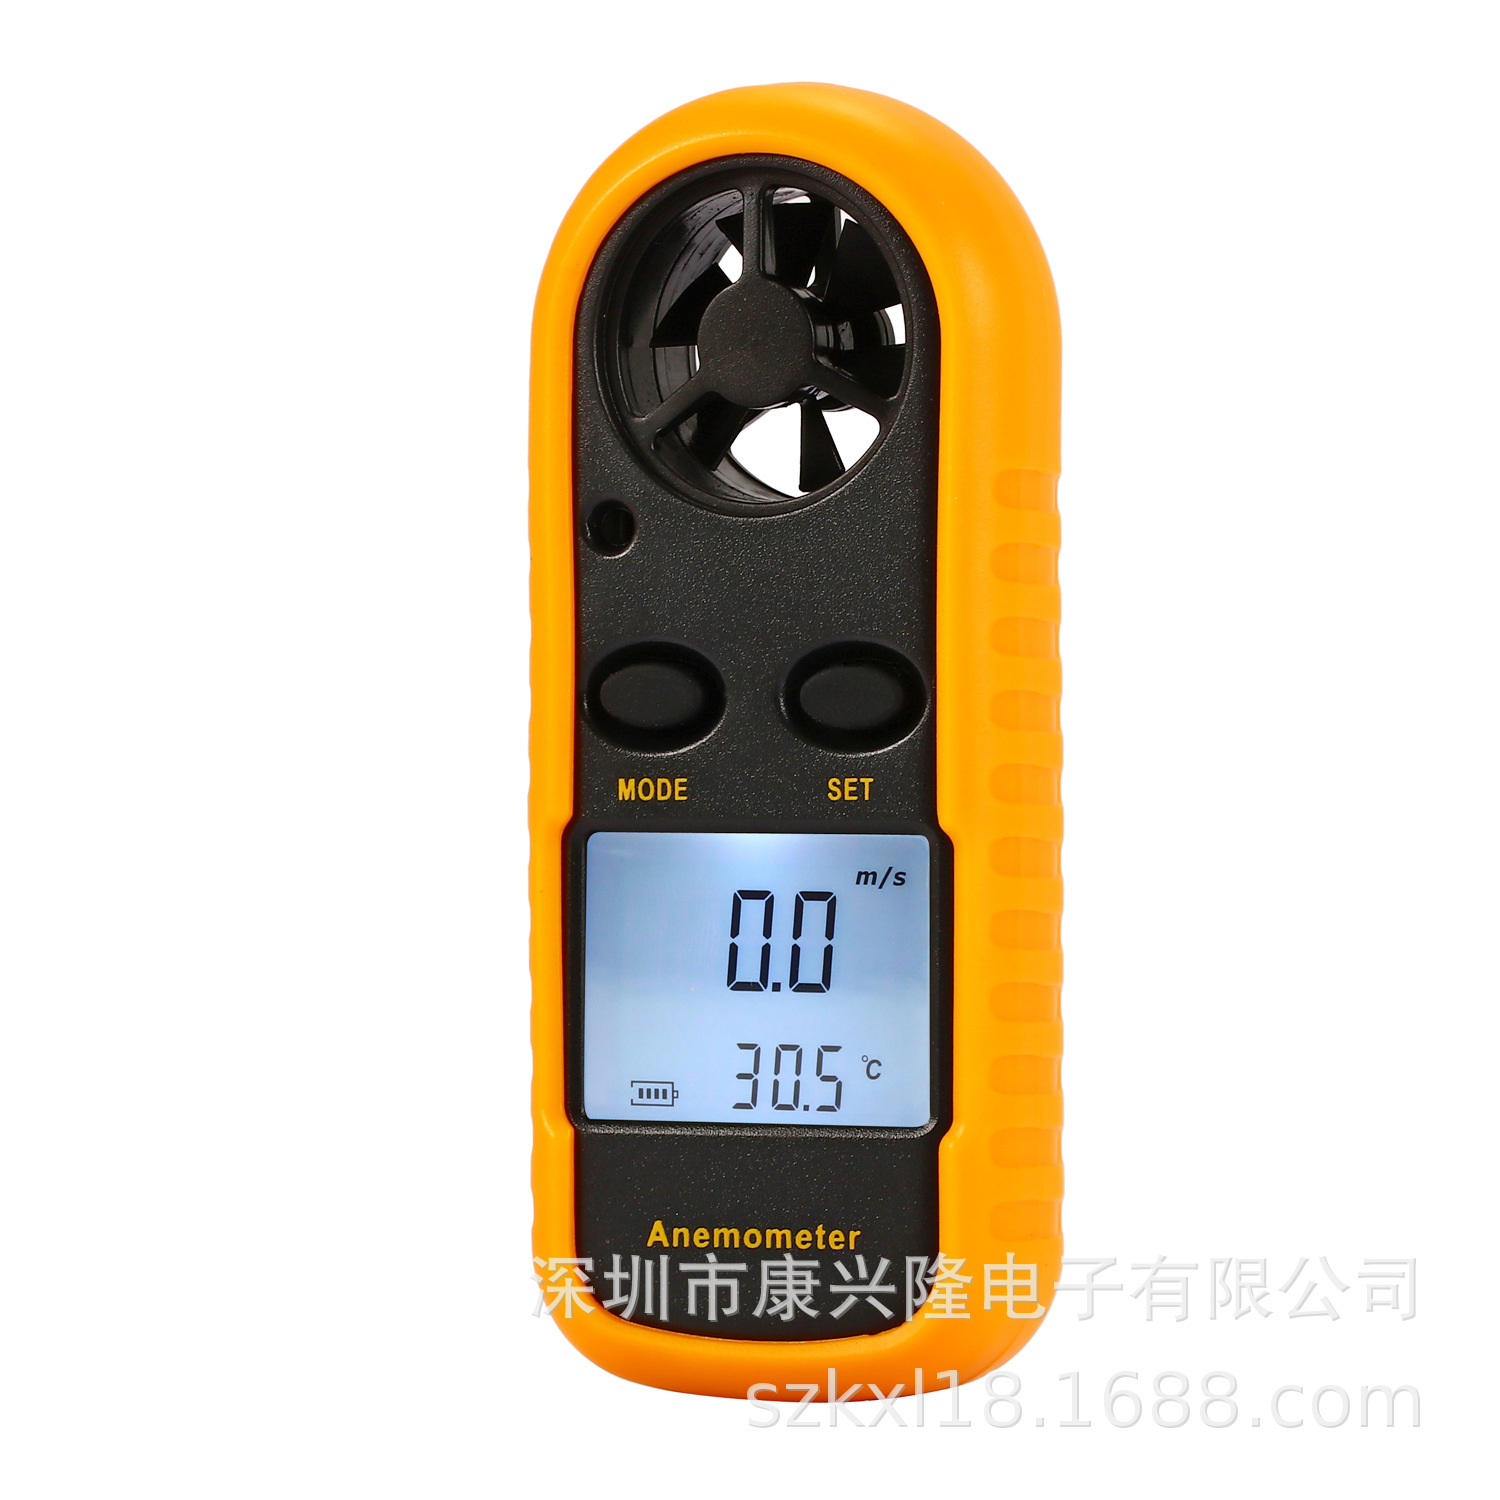 GM816 Mini Digital Anemometer Thermometer Wind Speed Air Velocity Temperature Measuring Anemometro With Backlight Cardboard